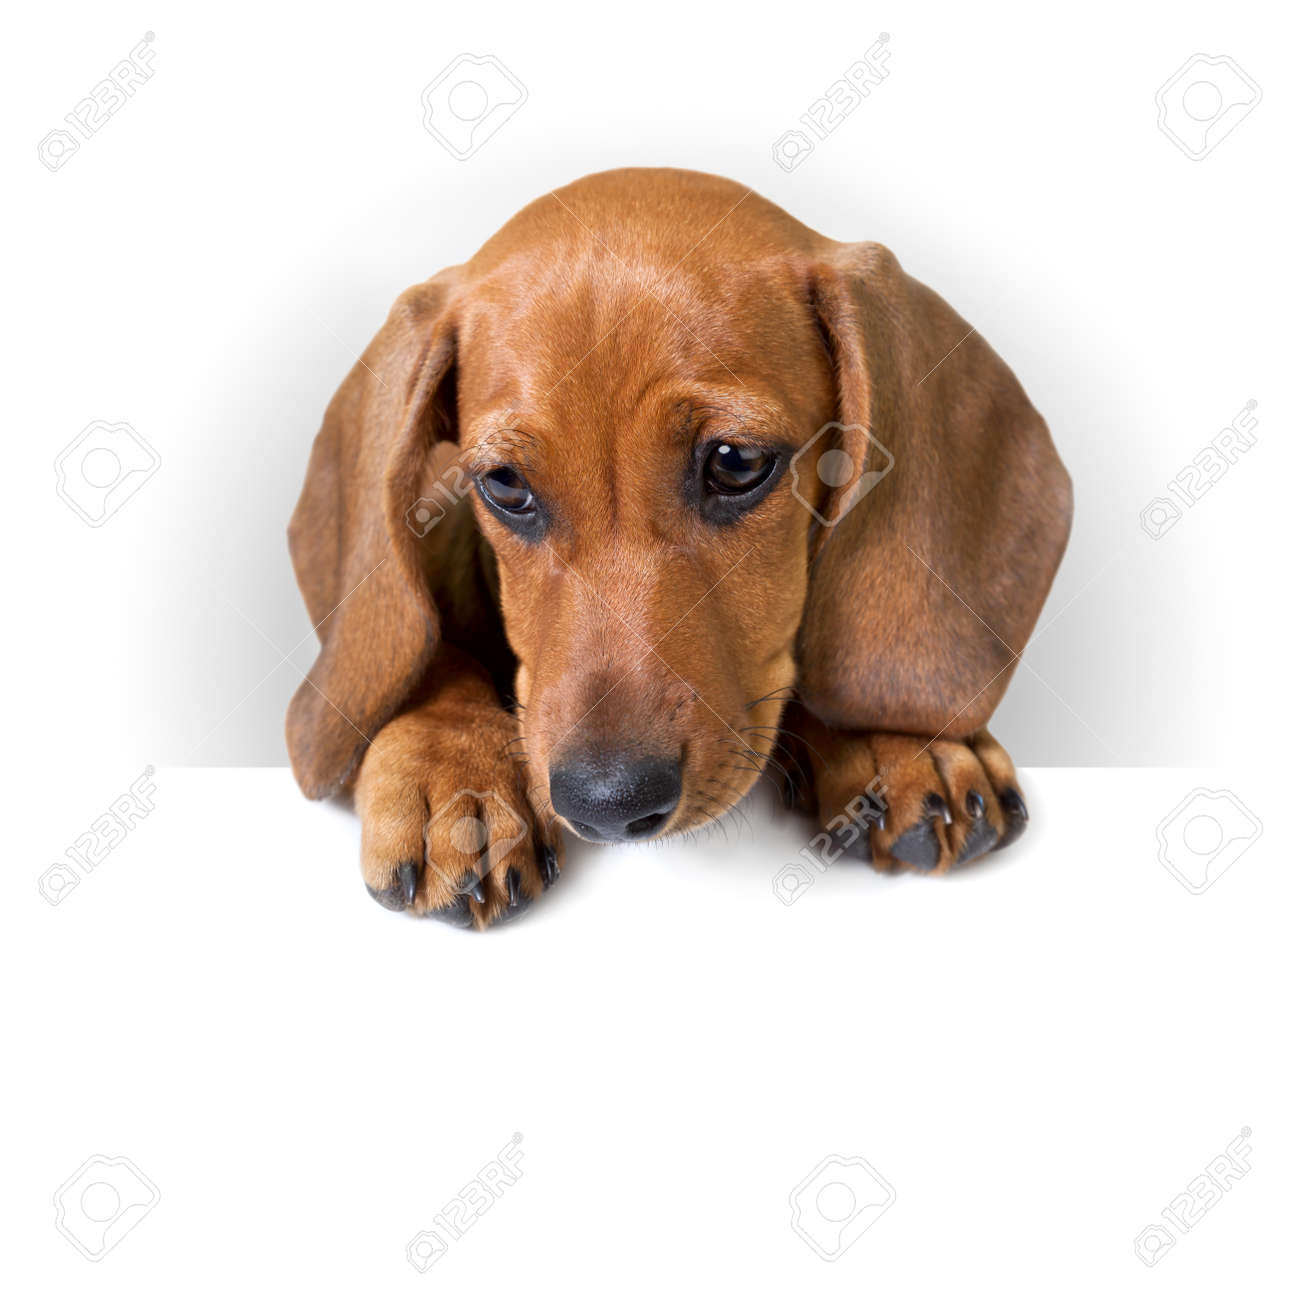 cute Dachshund Puppy with white banner for text   copy space   Isolated Stock Photo - 23863046